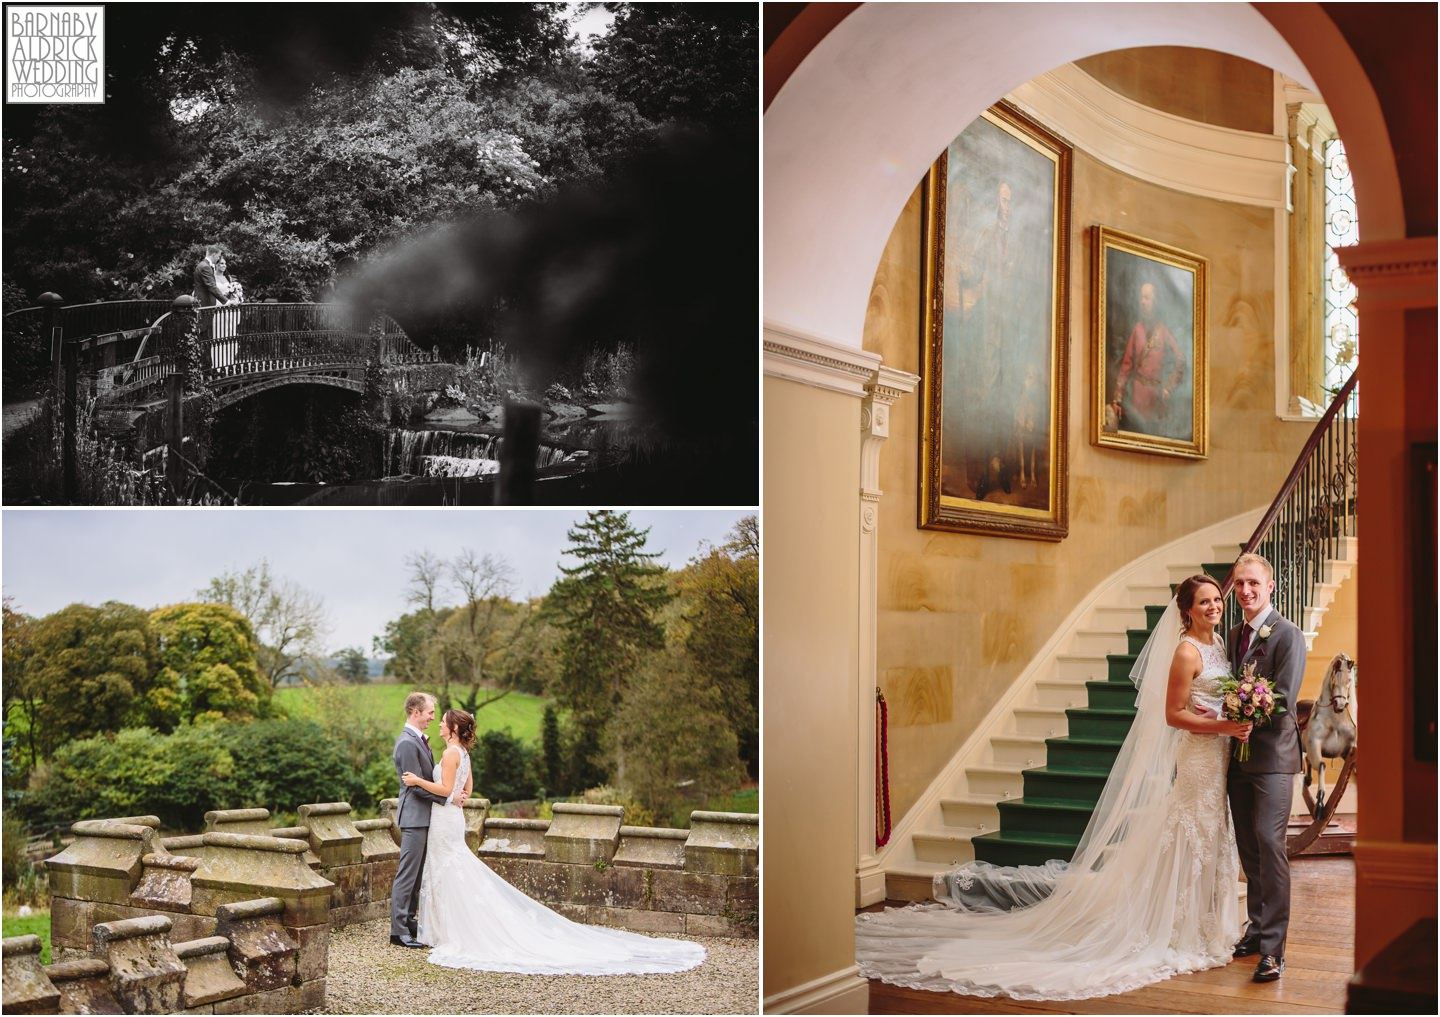 Ripley Castle wedding near harrogate yorkshire